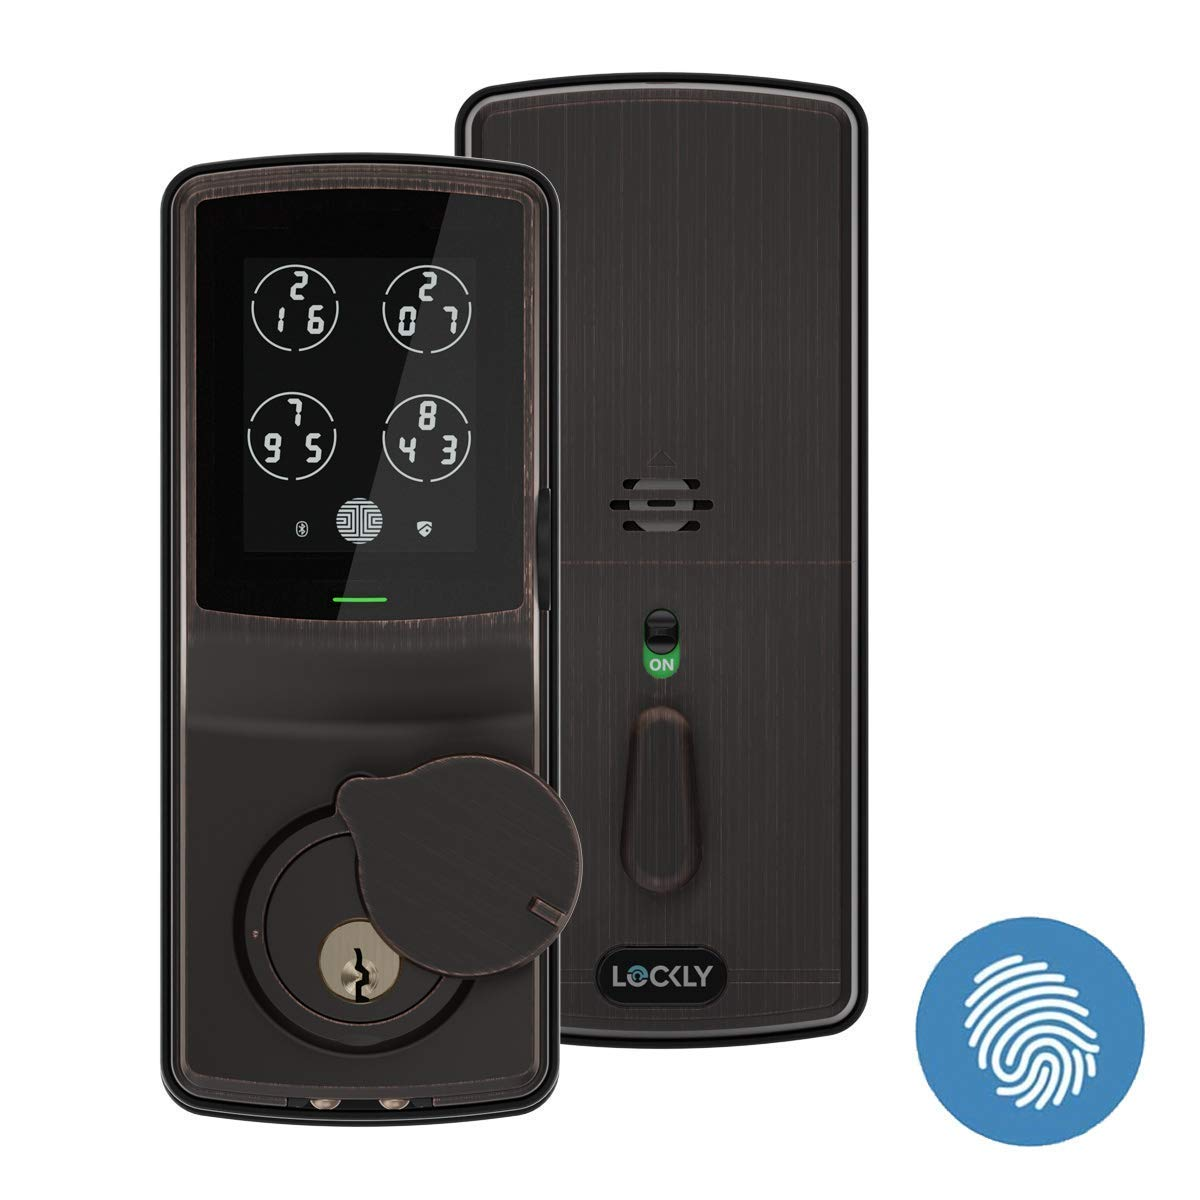 Lockly Bluetooth Keyless Entry Smart Door Lock (PGD 728F) Patented Keypad/Alarm System | Advanced 3D Fingerprint Reader | iOS and Android Compatible (VenetianBronze)